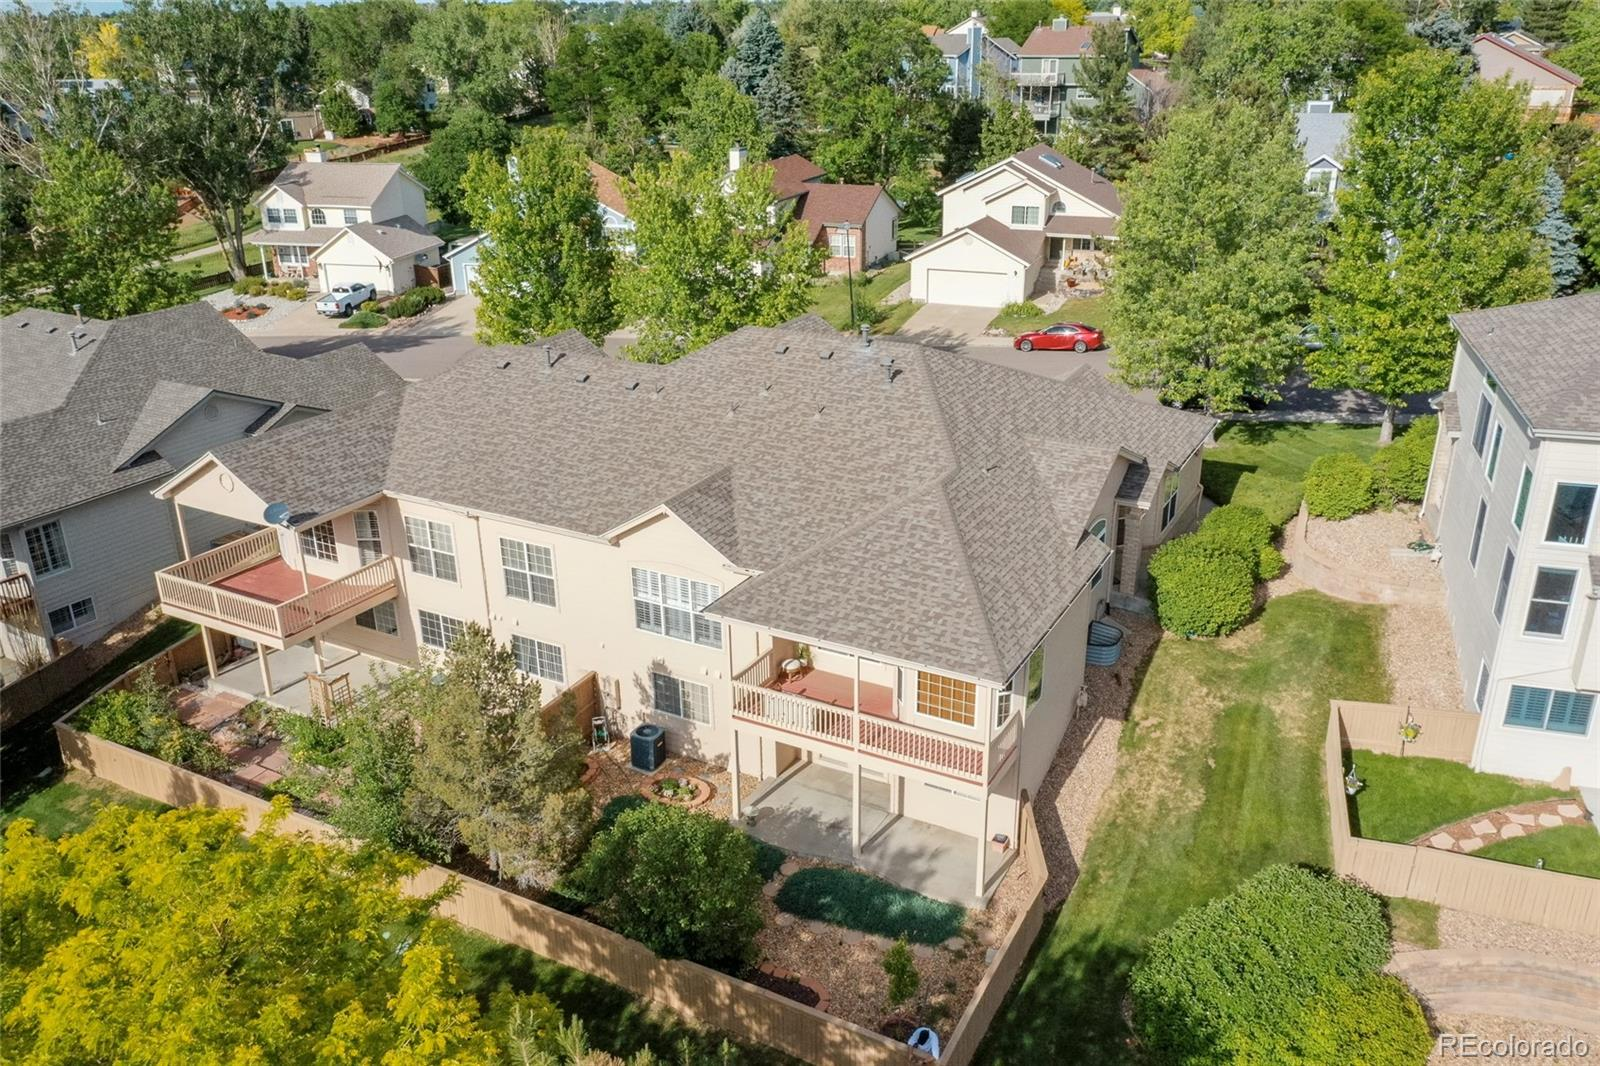 MLS# 4859119 - 26 - 9137 Woodland Drive, Highlands Ranch, CO 80126